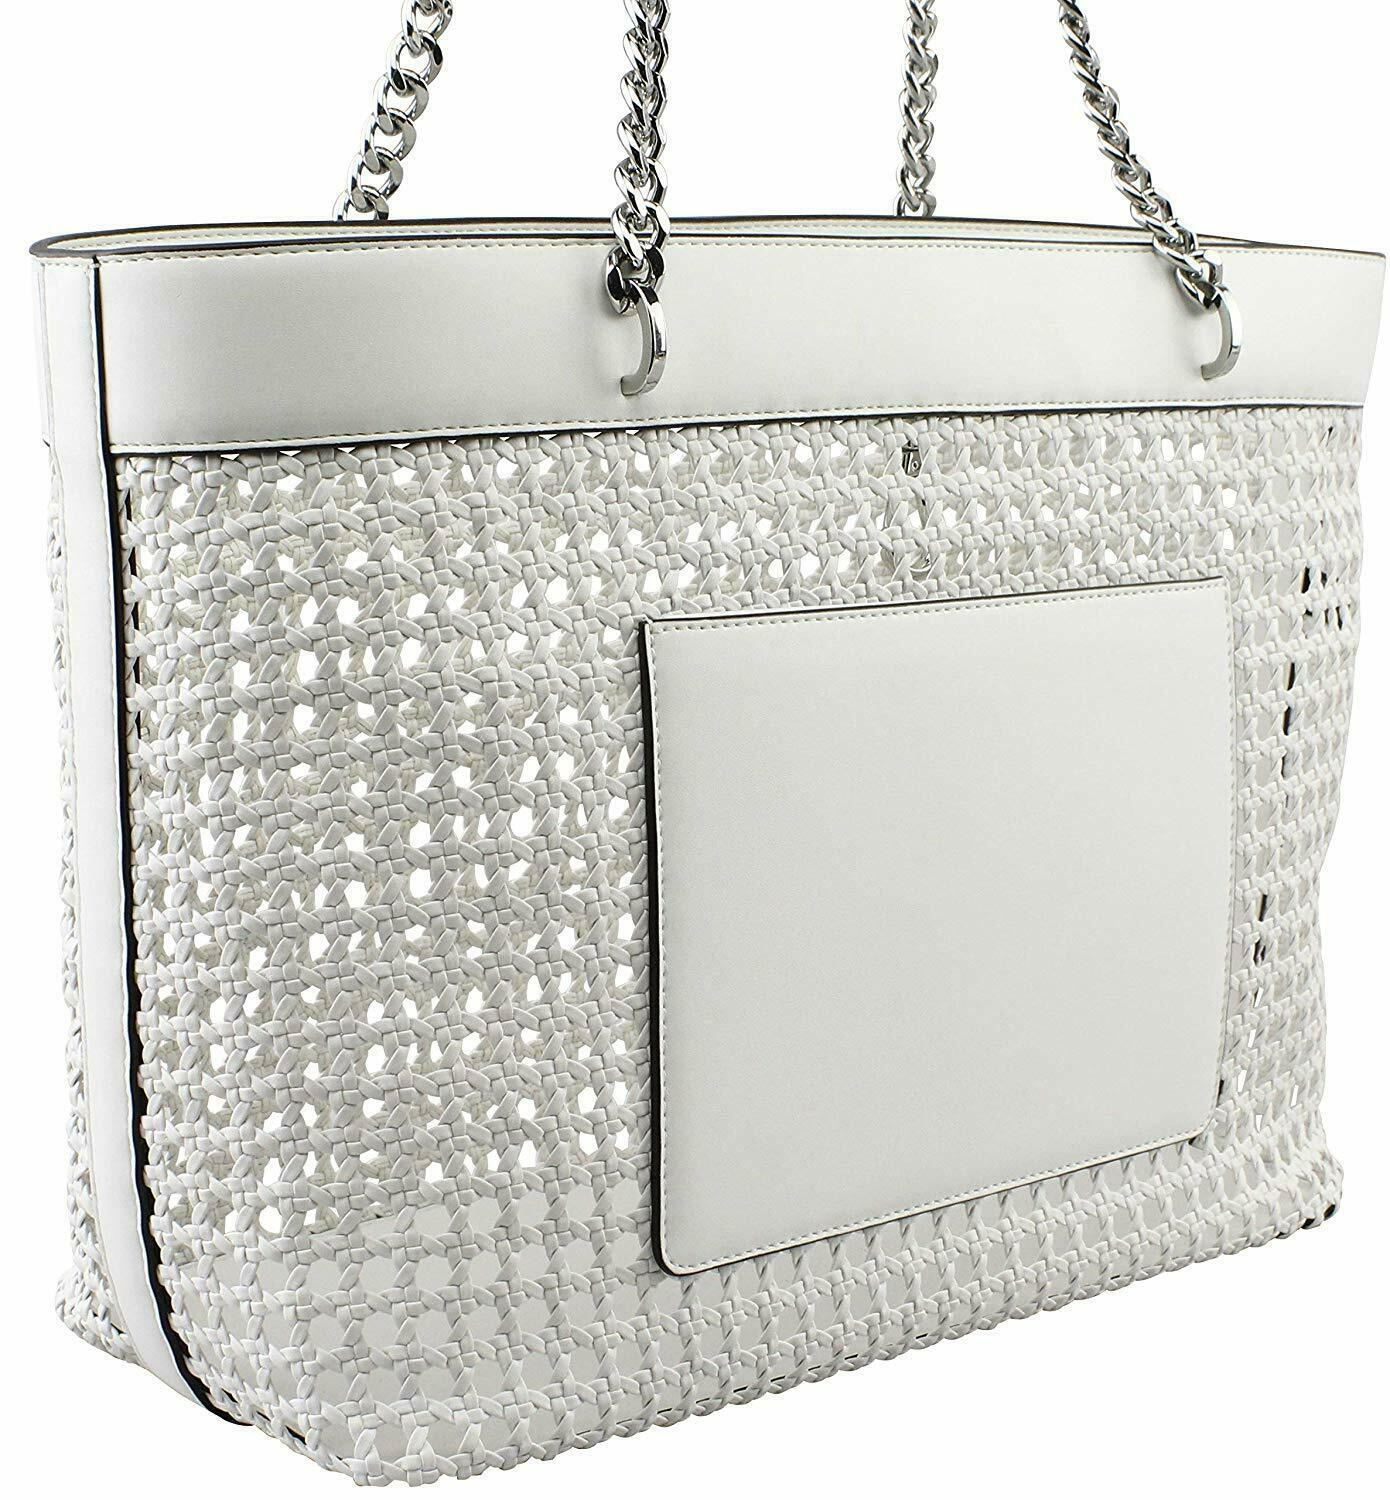 Michael Kors Kinsley Large Tote in Optic White